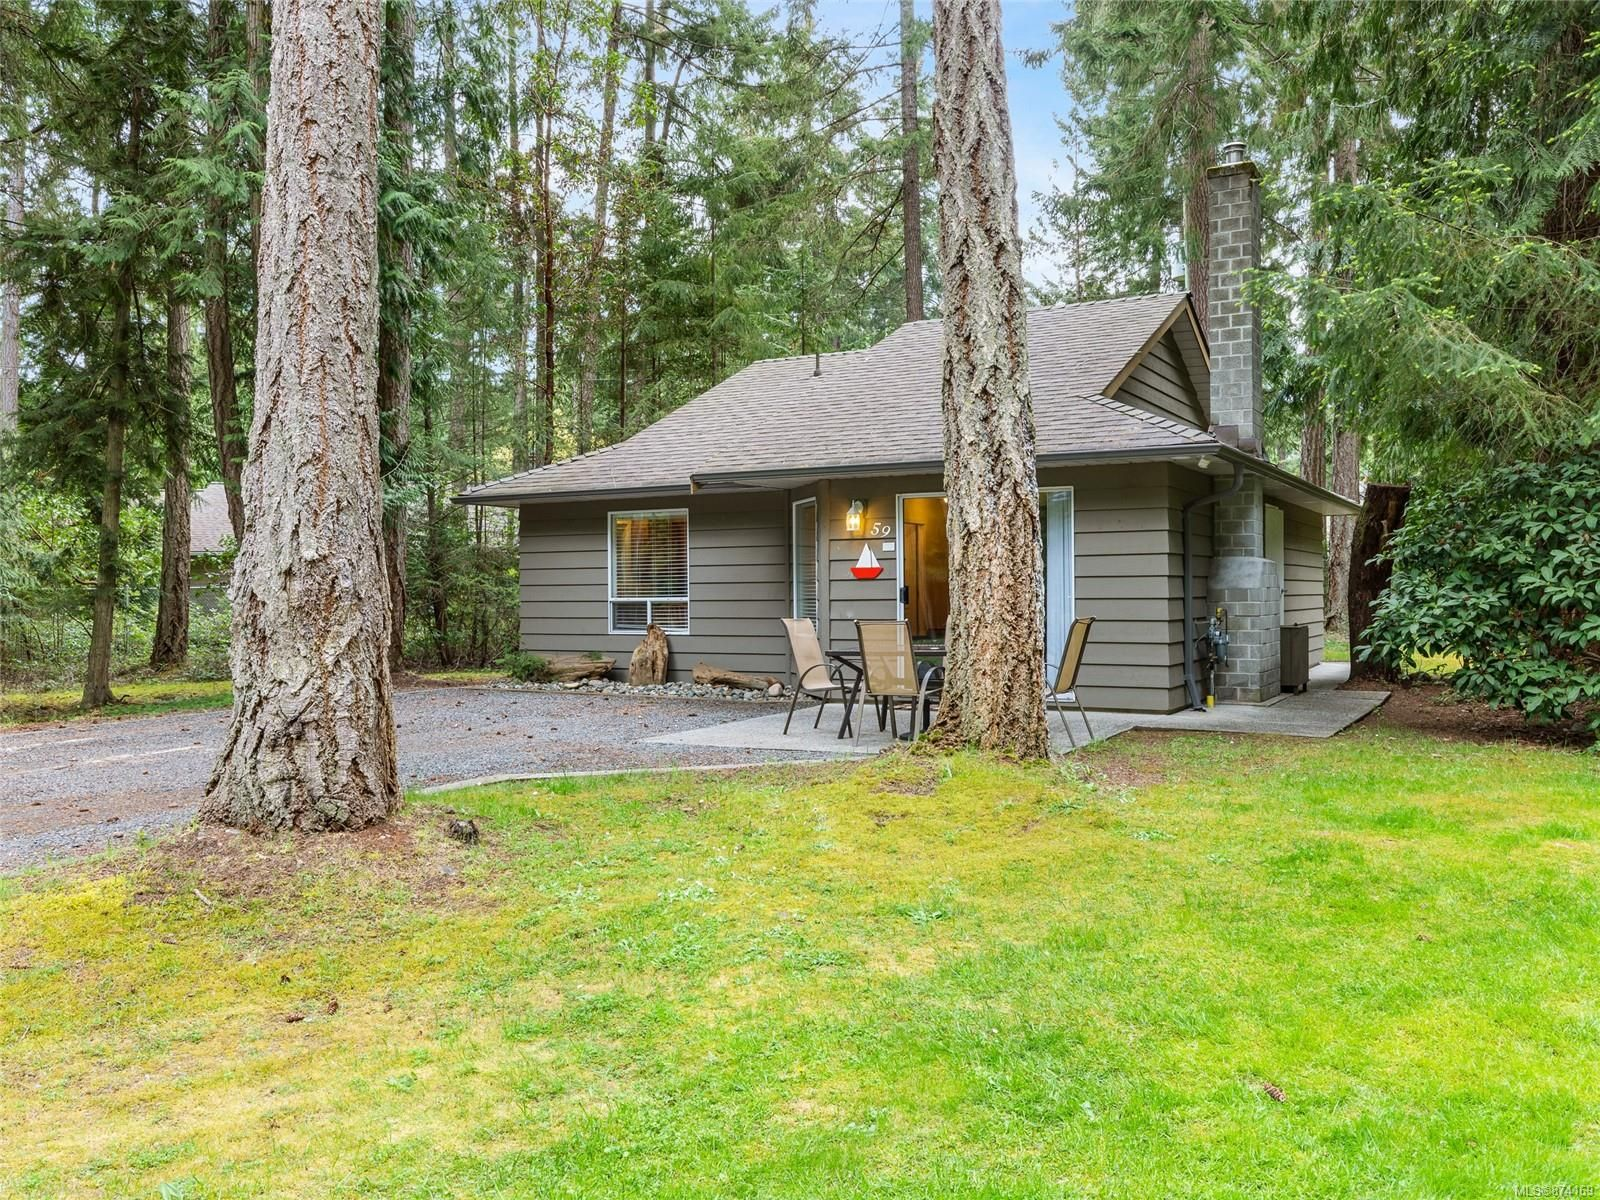 Main Photo: 59 1051 RESORT Dr in : PQ Parksville Row/Townhouse for sale (Parksville/Qualicum)  : MLS®# 874169